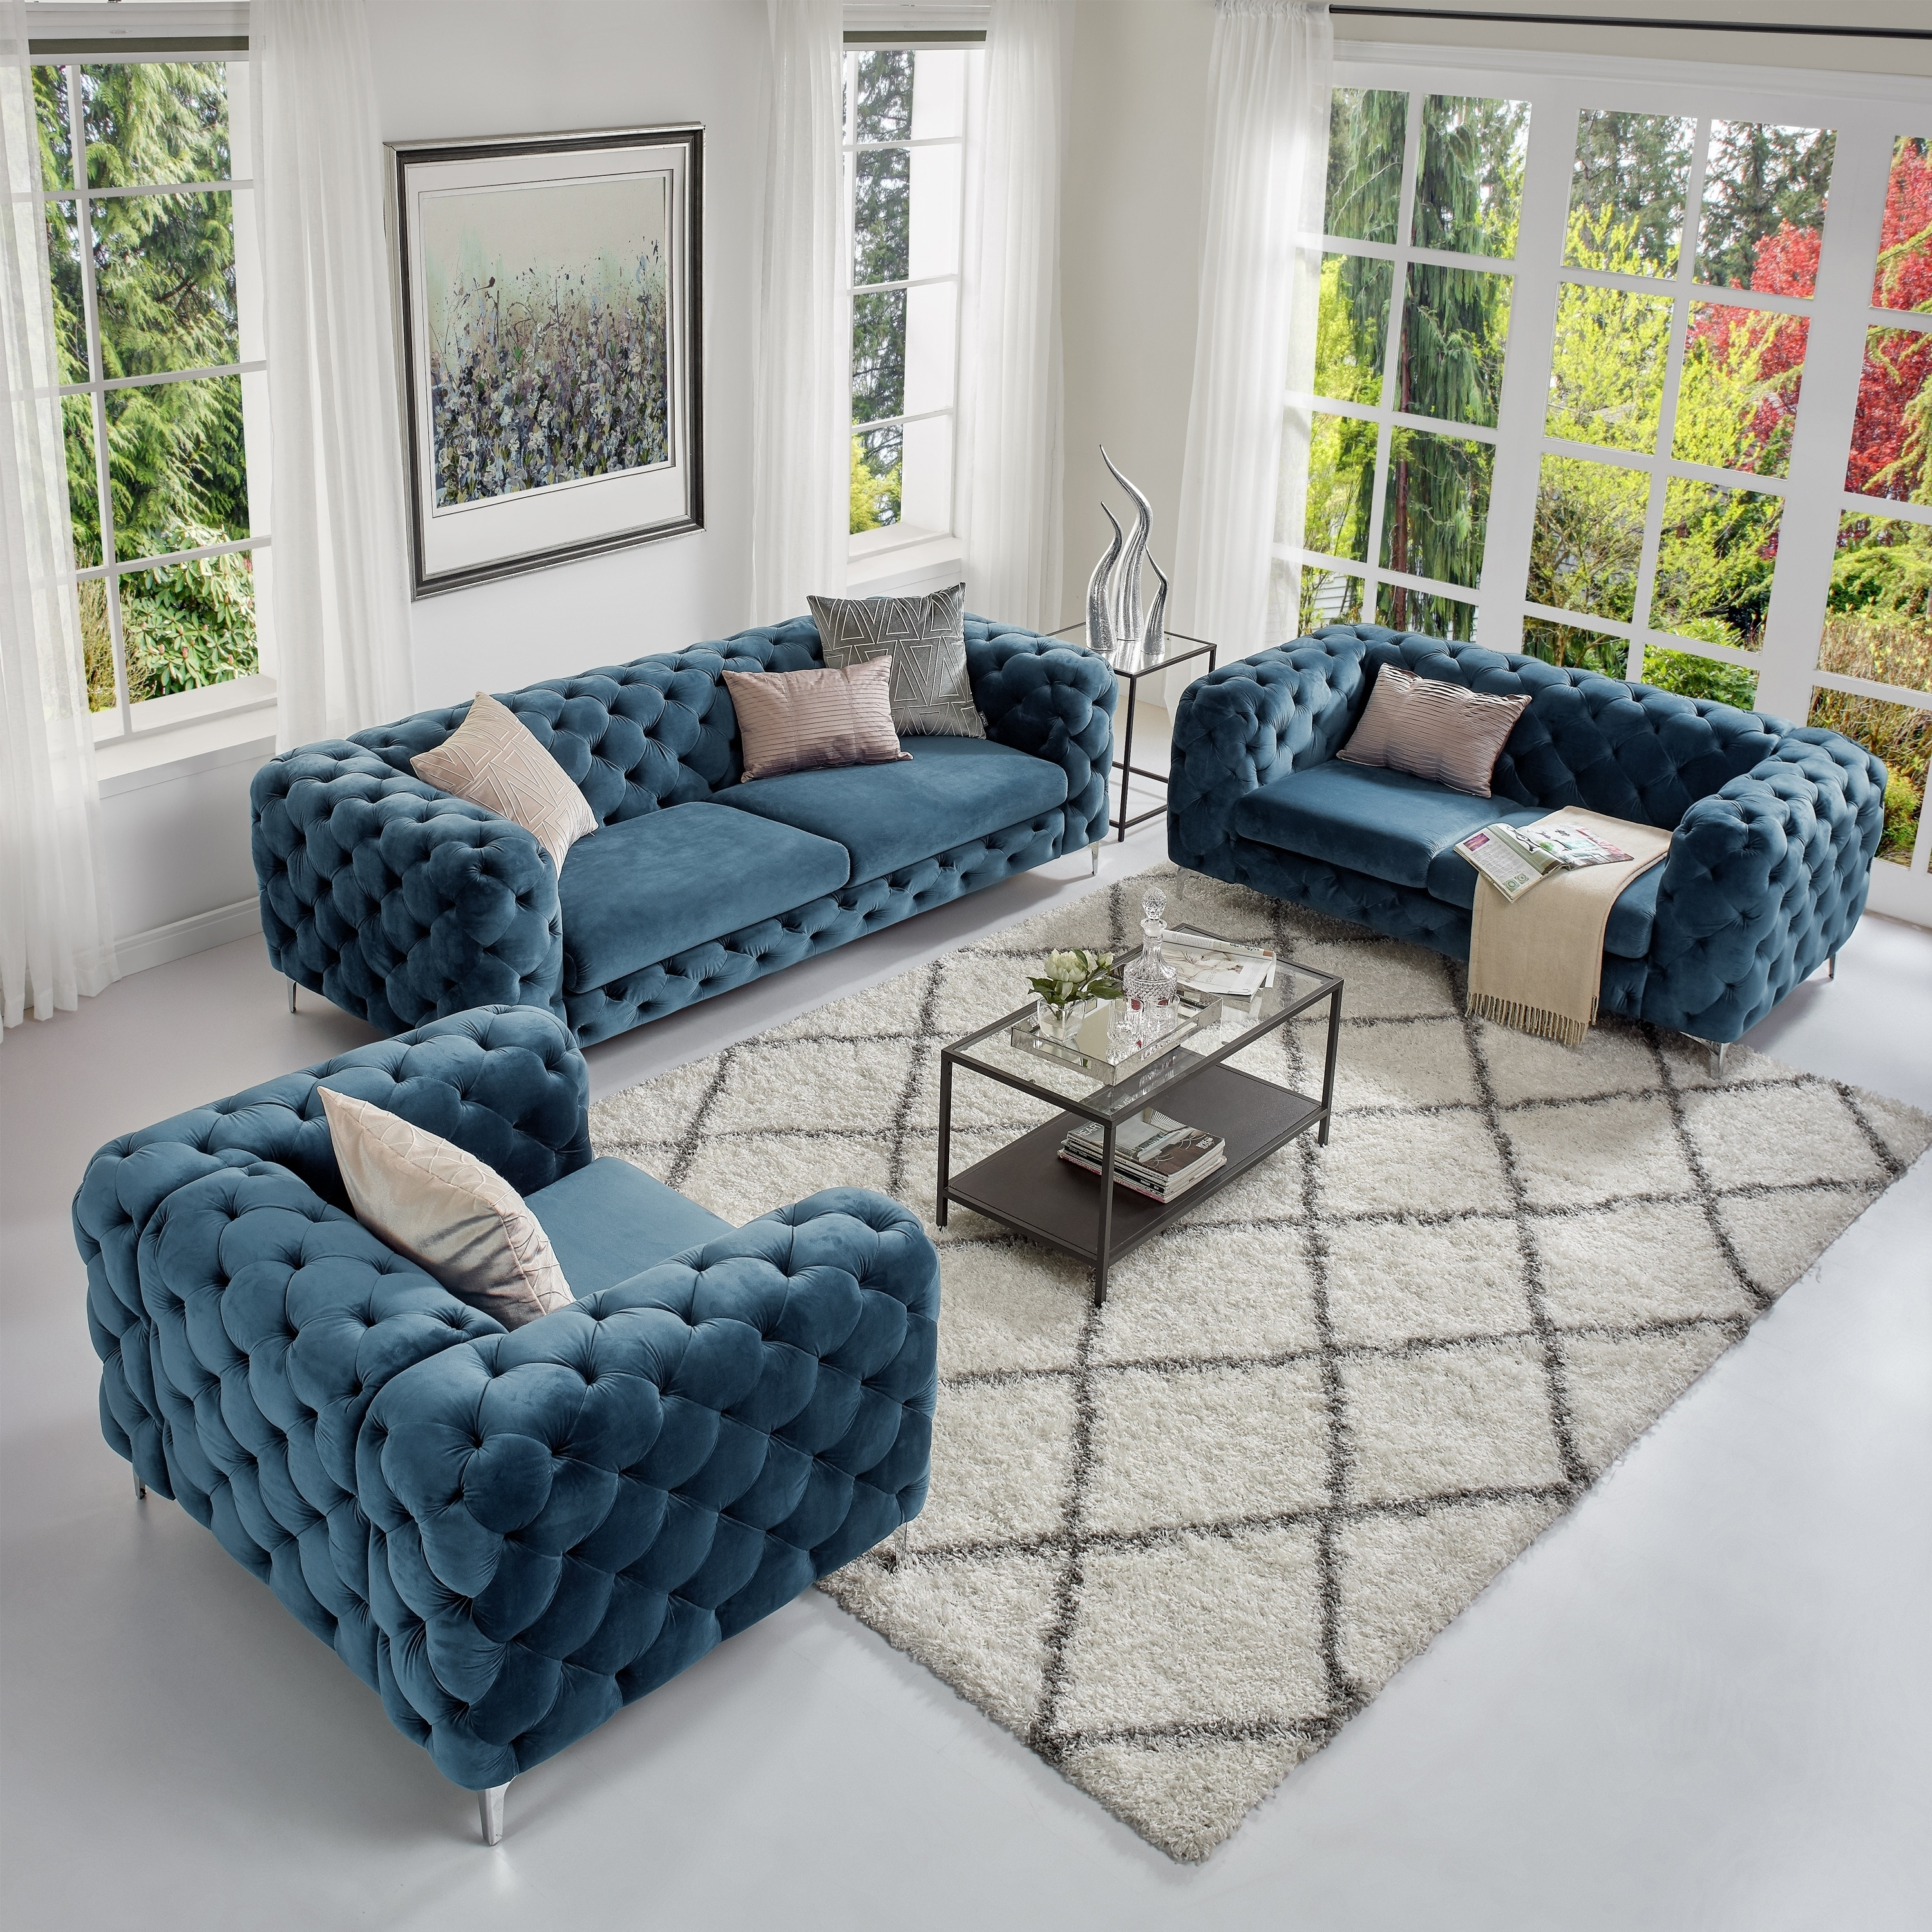 Shop corvus aosta tufted velvet loveseat and sofa living room set free shipping today overstock com 21029535